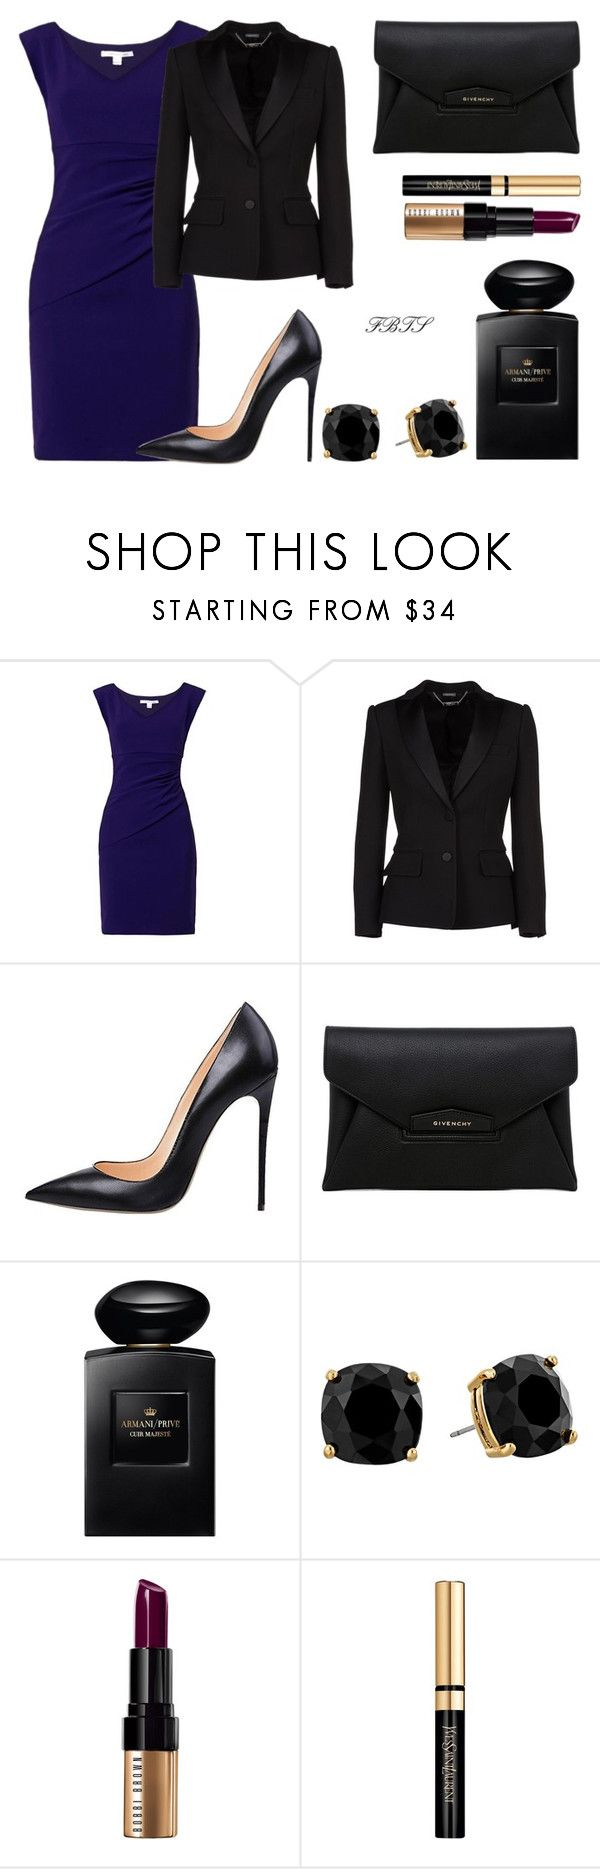 """""""Feeling Like A Royal Lady"""" by flybeyondtheskies ❤ liked on Polyvore featuring Diane Von Furstenberg, Alexander McQueen, Givenchy, Giorgio Armani, Kate Spade, Bobbi Brown Cosmetics and Yves Saint Laurent"""